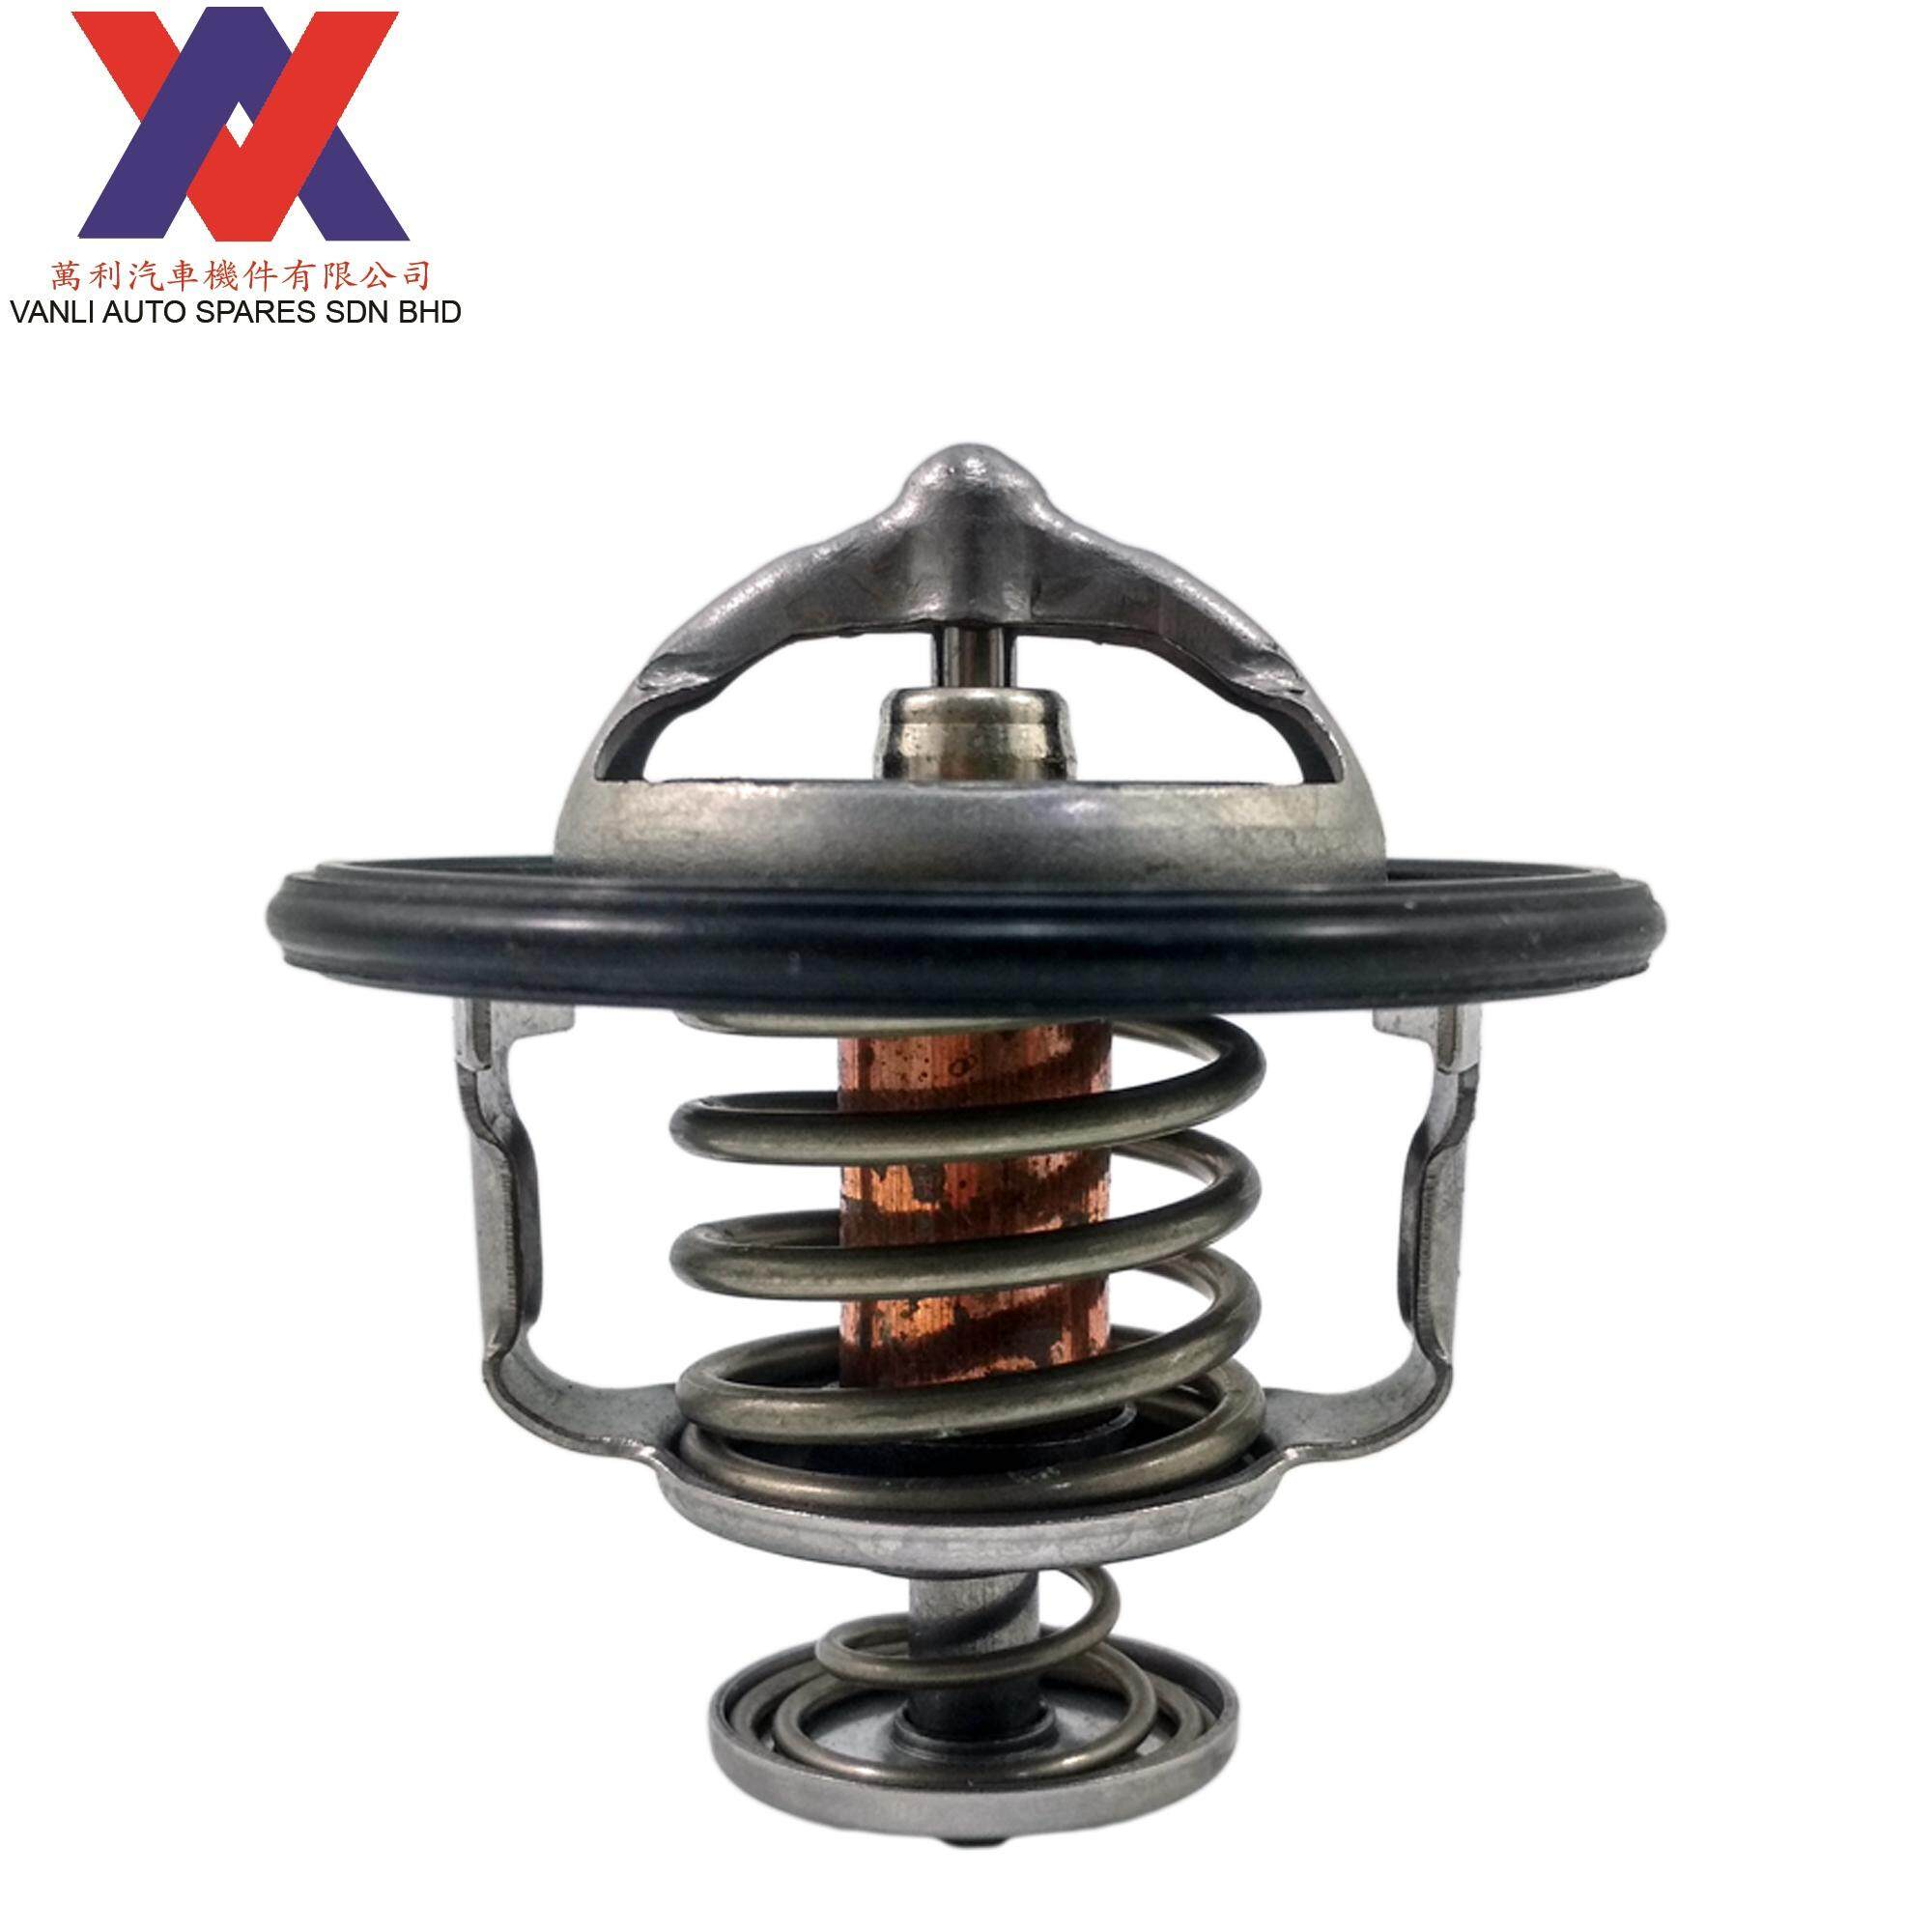 Nissan Auto Parts Spares Price In Malaysia Best 1997 Sentra Engine Thermostat For X Trail 1st Gen T30